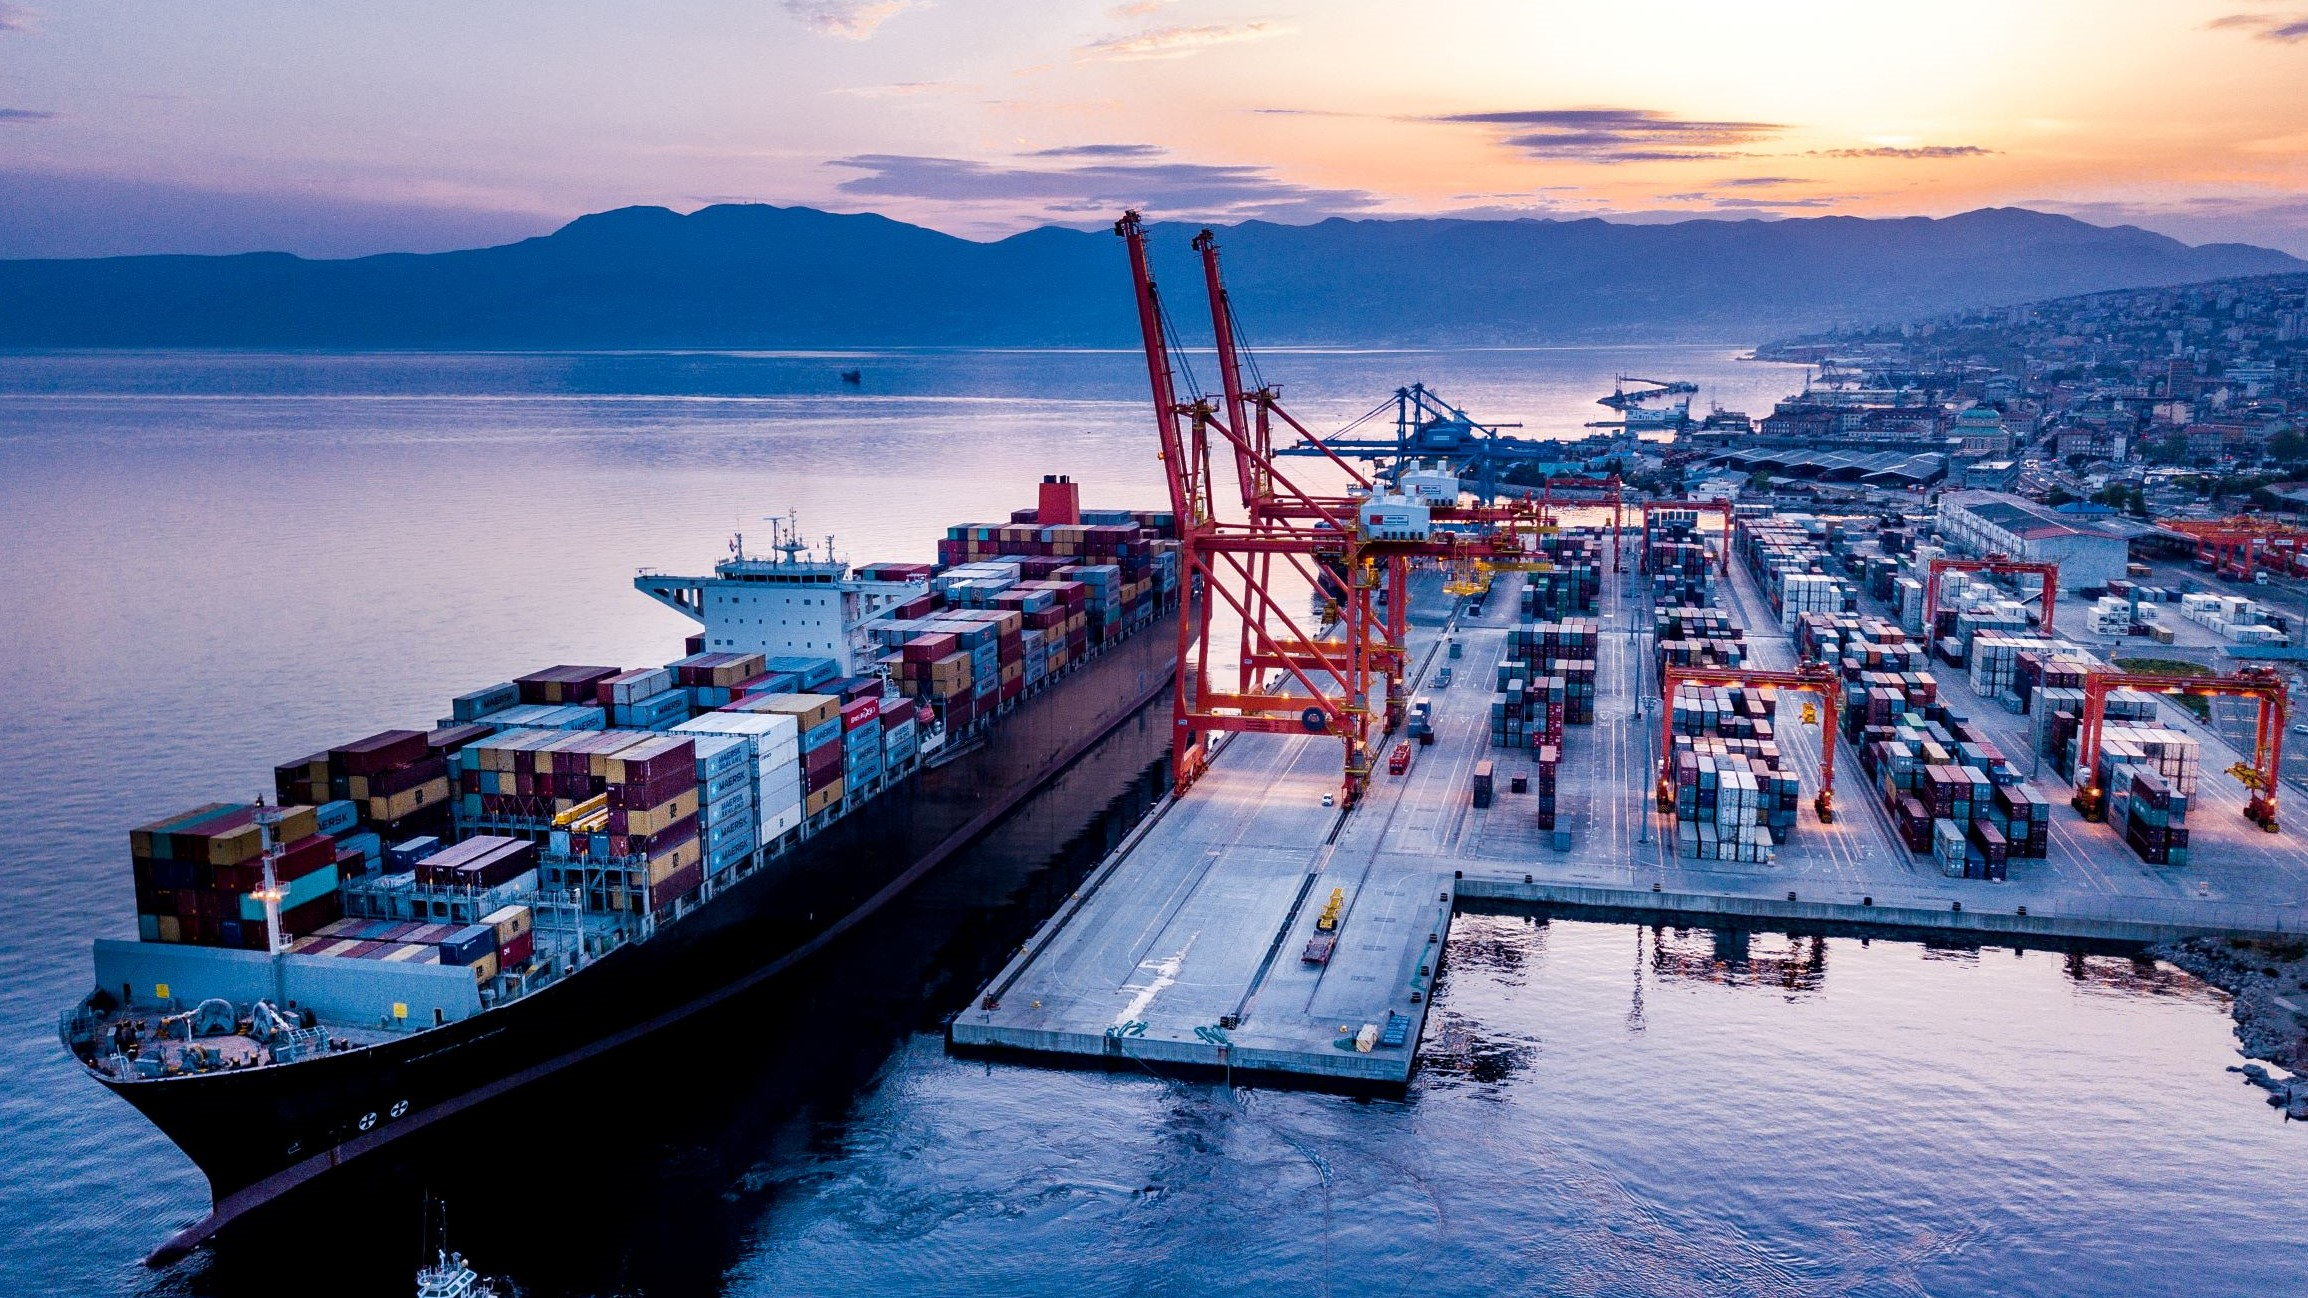 ICTSI first half volumes up 7% on operational ramp-ups and